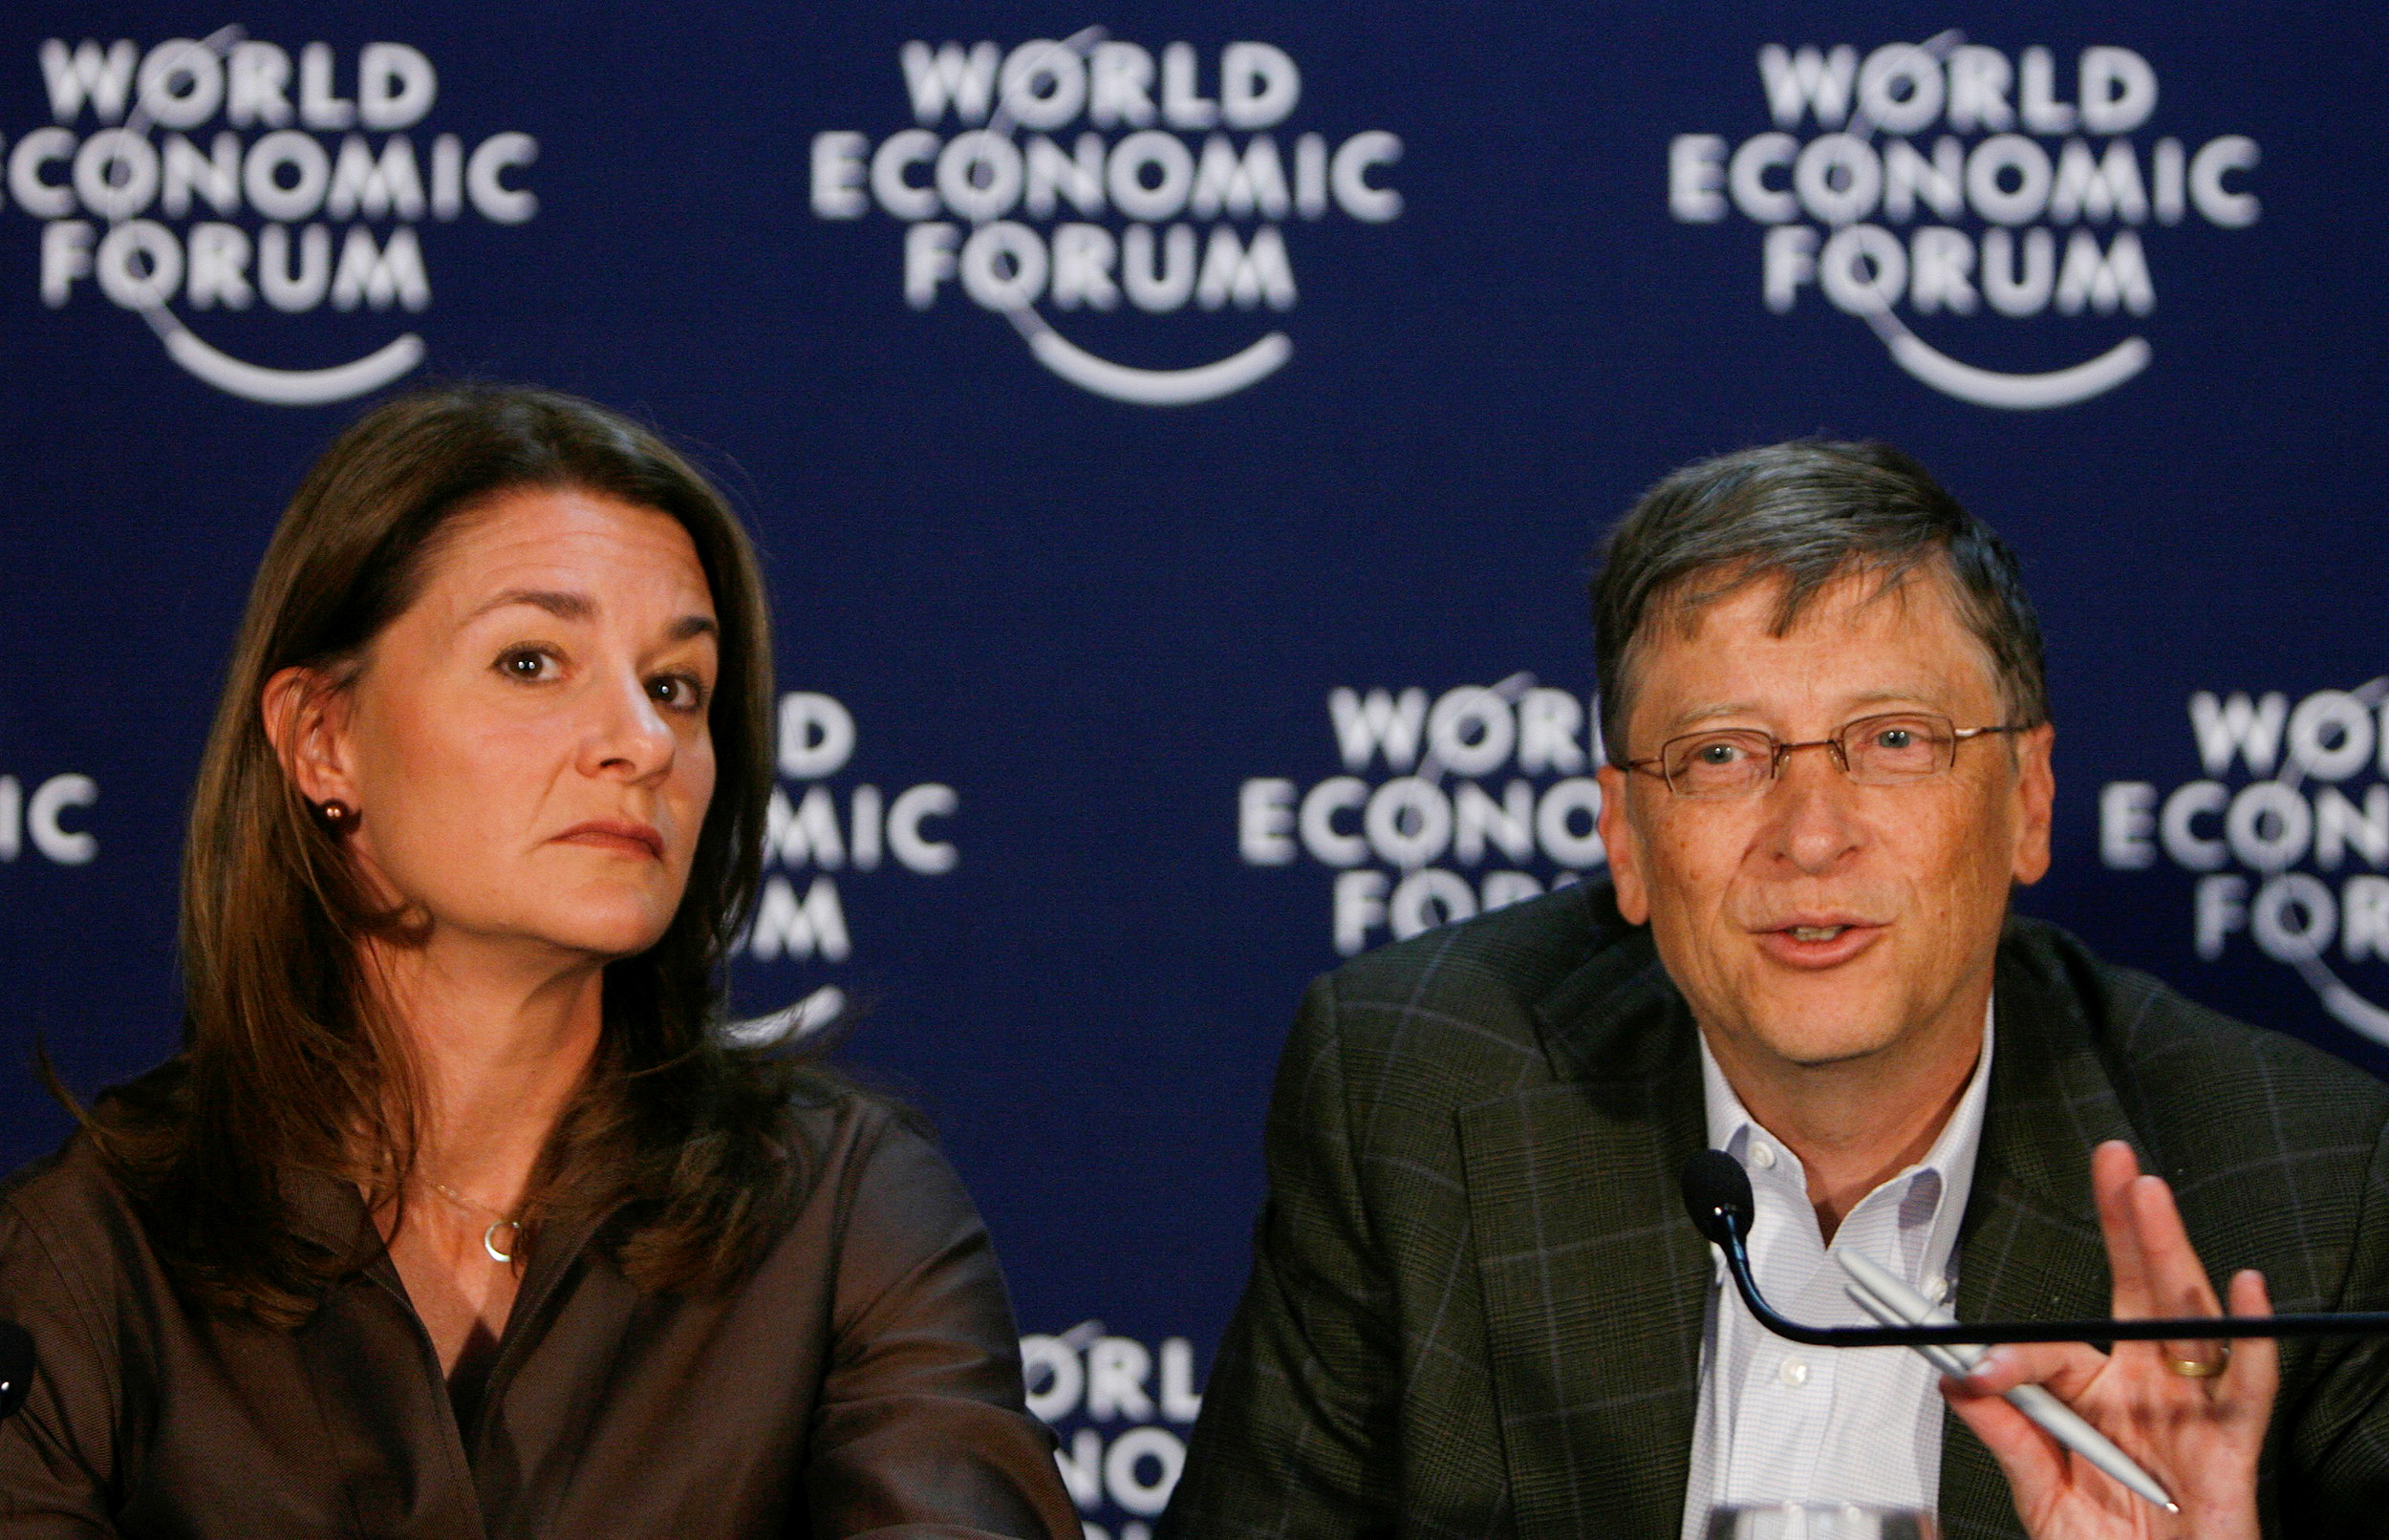 Microsoft founder Bill Gates and his wife Melinda Gates attend a news conference at the World Economic Forum (WEF) in Davos January 30, 2009.